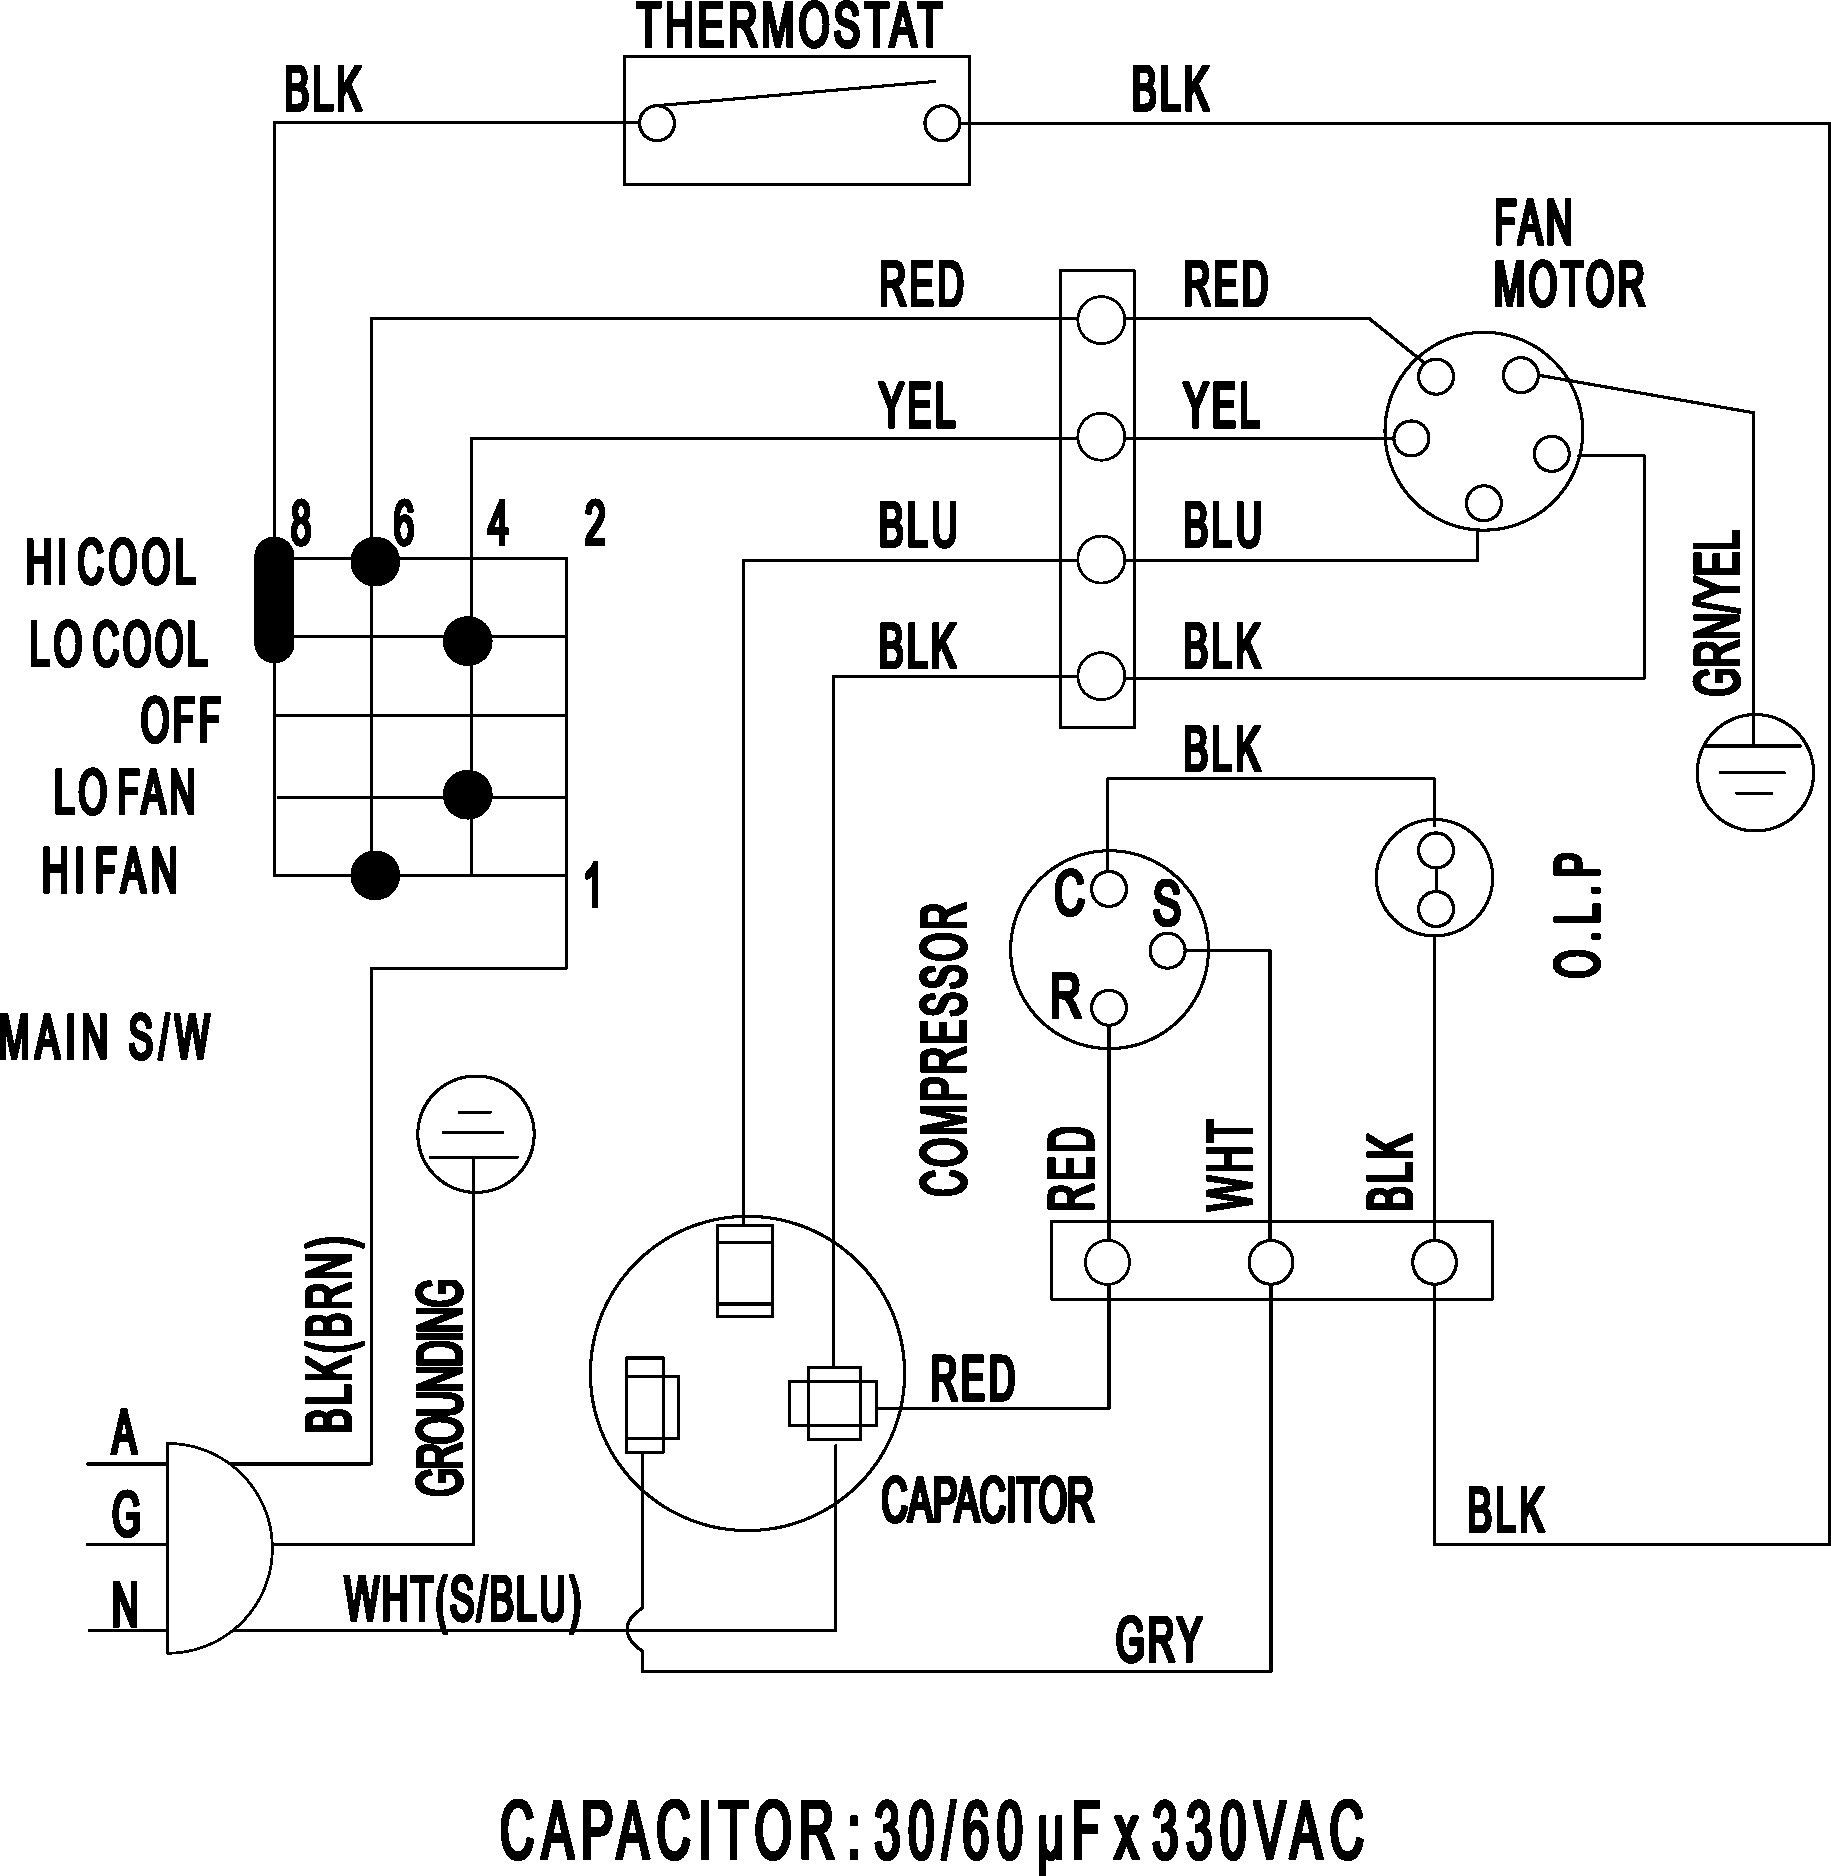 Wiring Diagram Refrigeration Compressor New In 2020